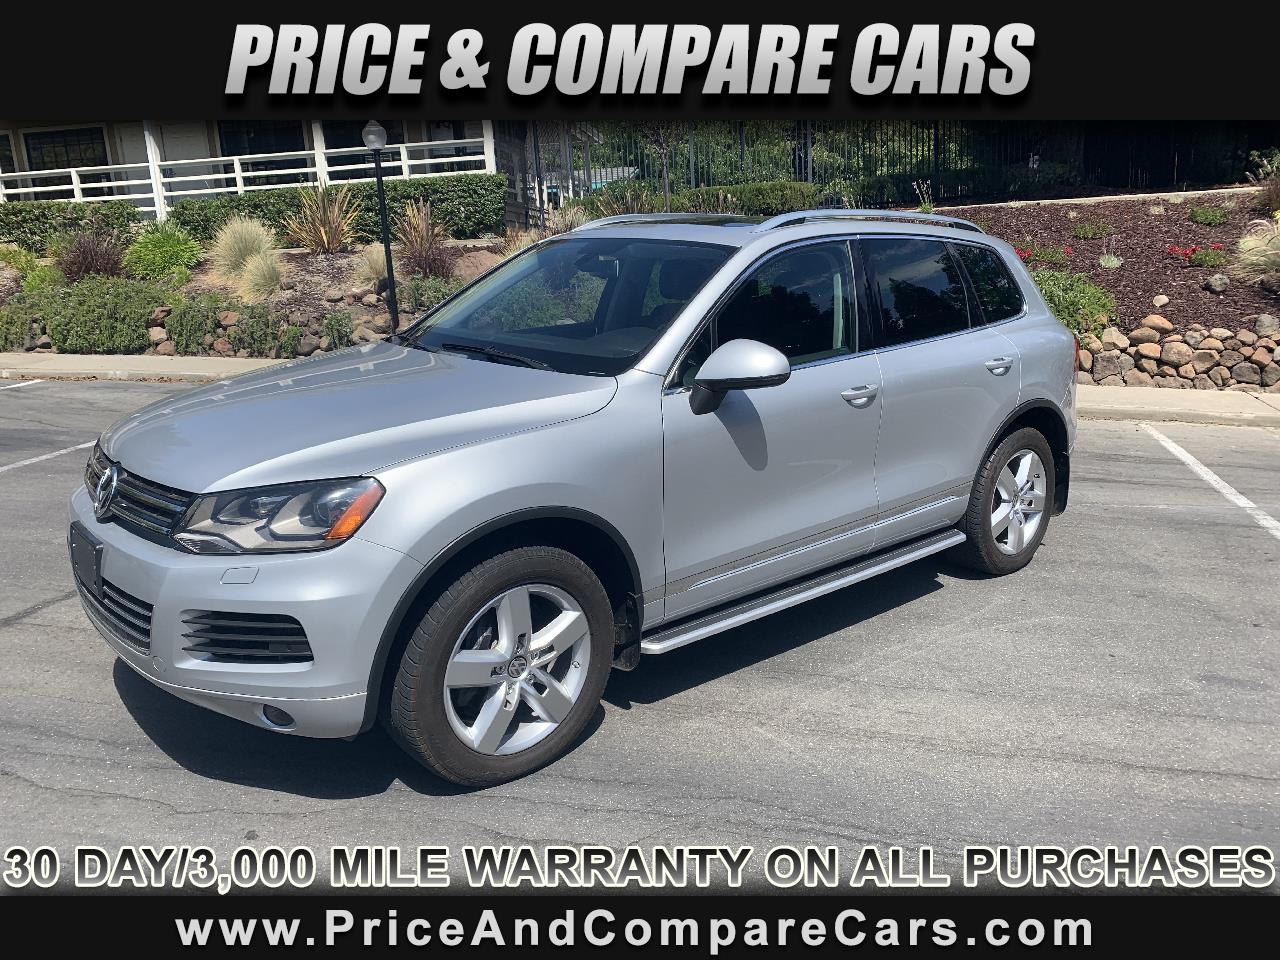 2012 Volkswagen Touareg TDI LUXURY PACKAGE PANO ROOF NAVI HEATED SEATS